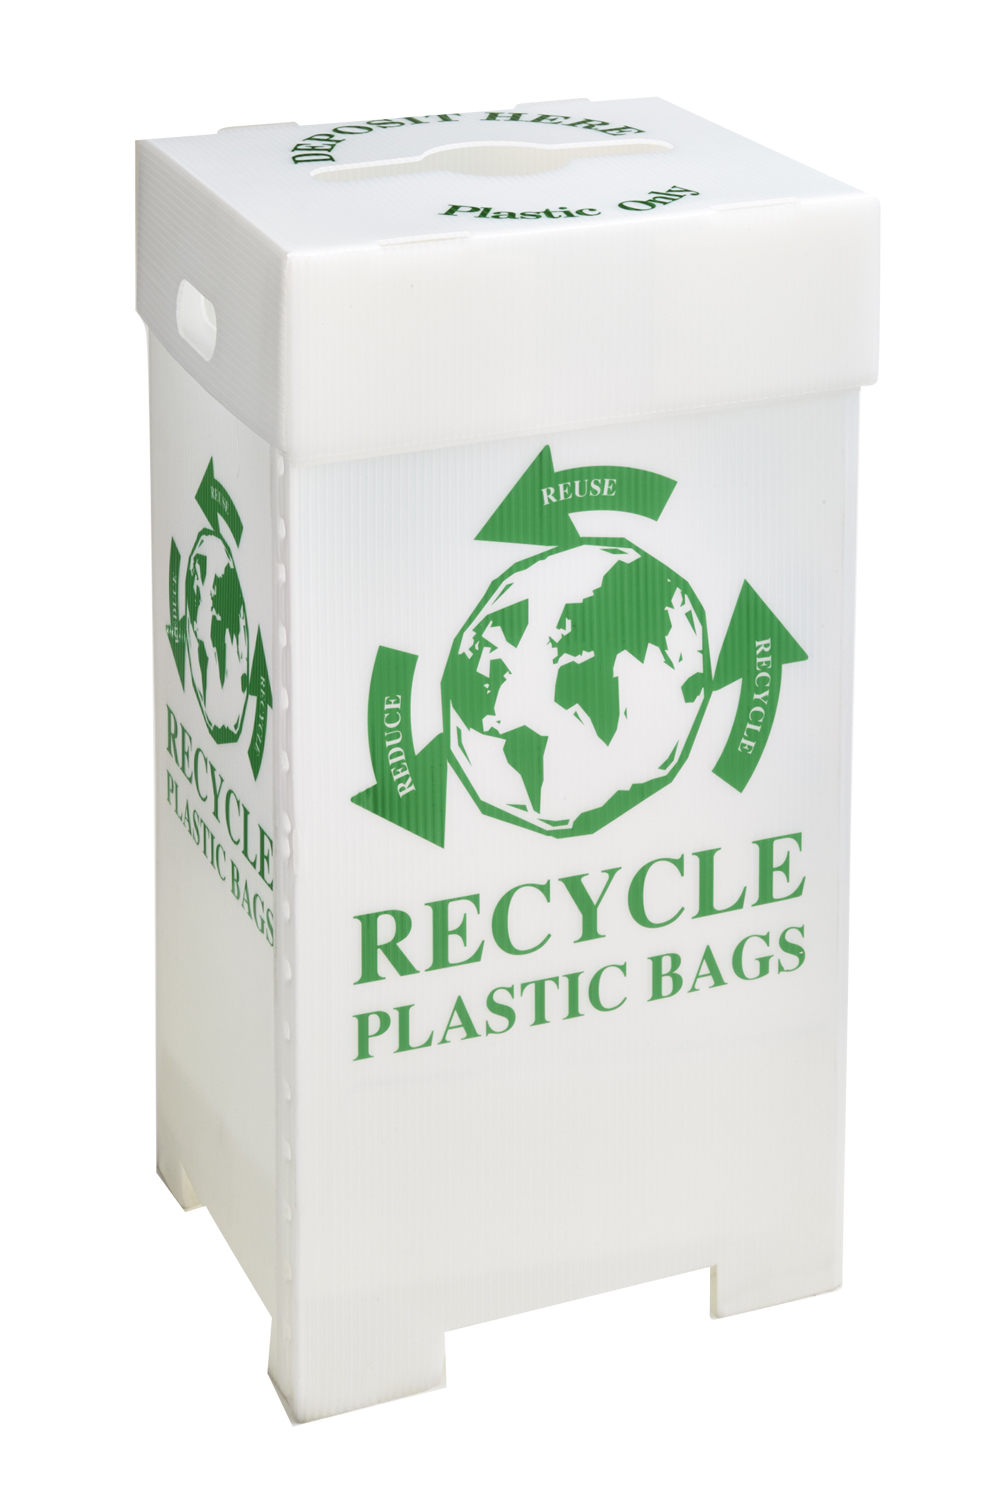 Recyclable Plastic Items